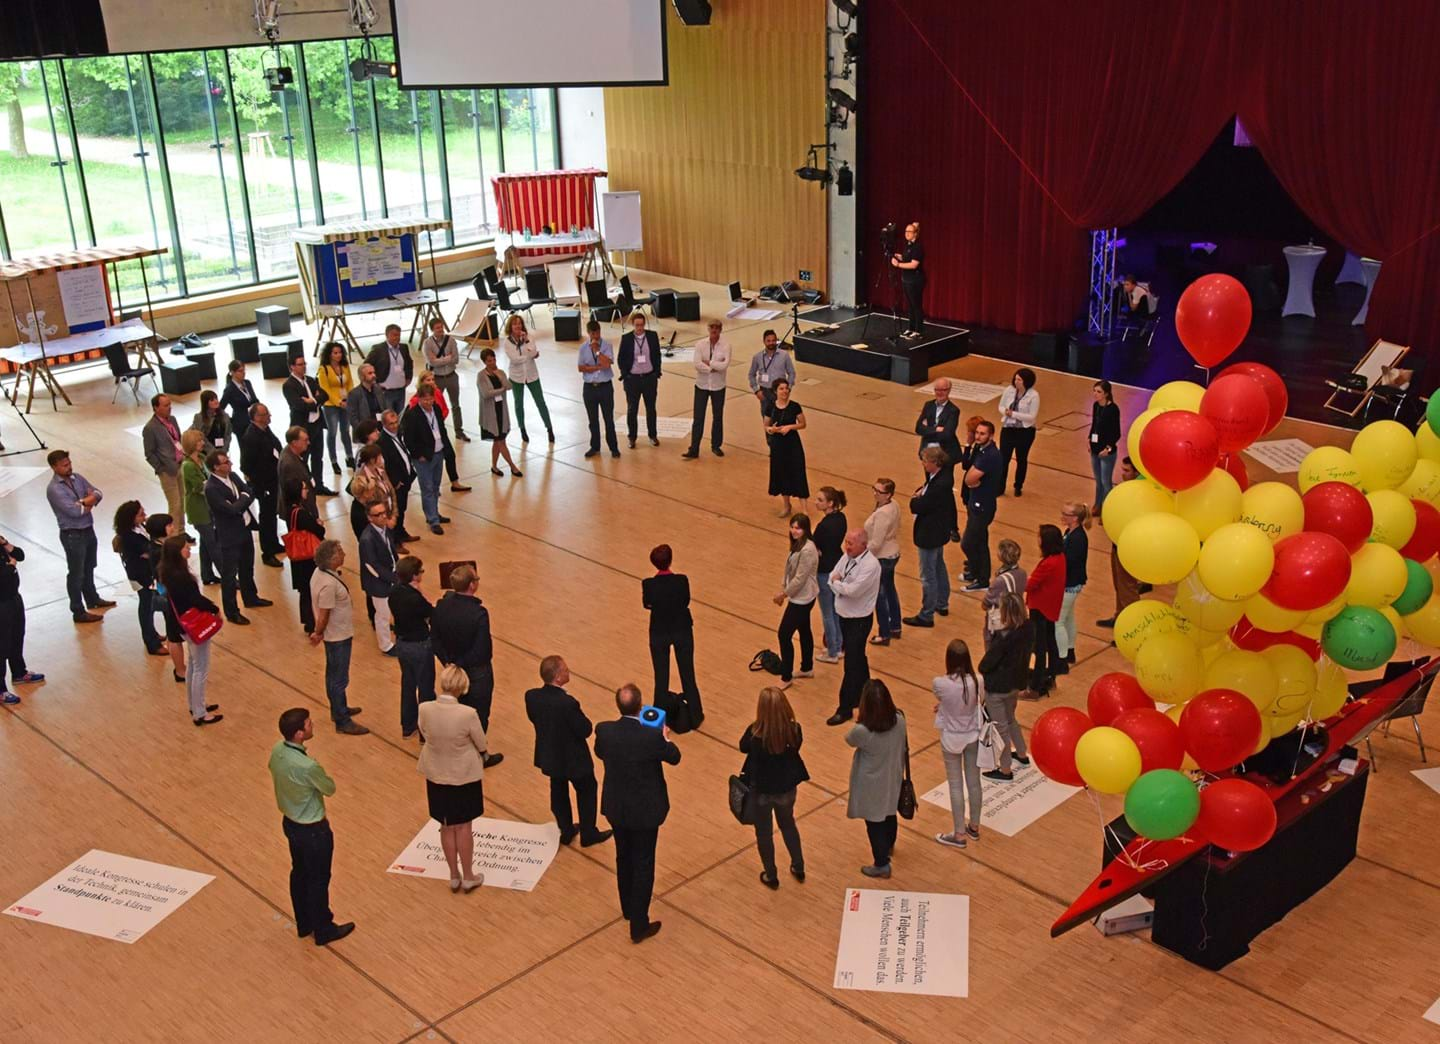 Central Europe's first training platform for event organisers